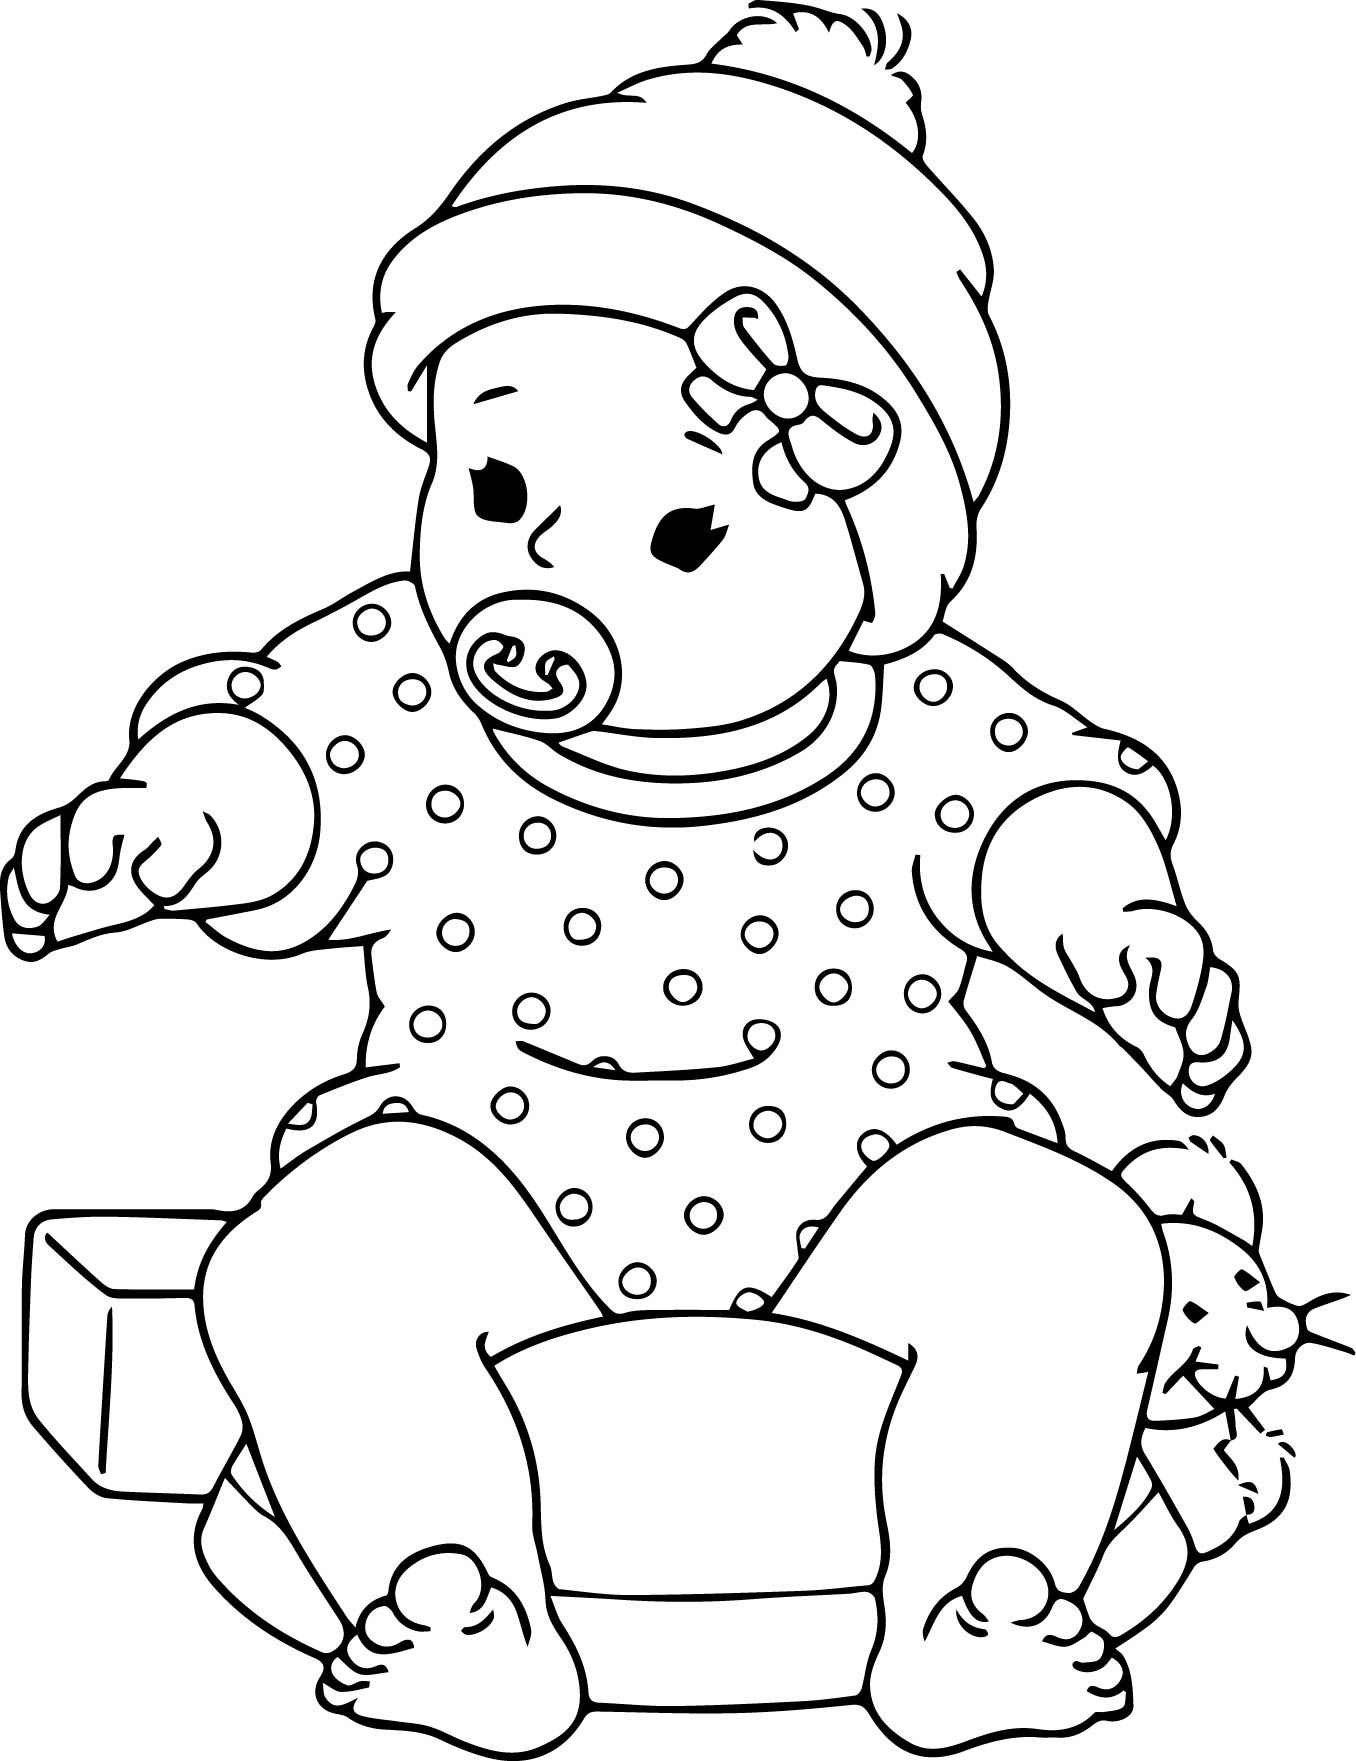 doll colouring pages lol dolls coloring pages best coloring pages for kids colouring pages doll